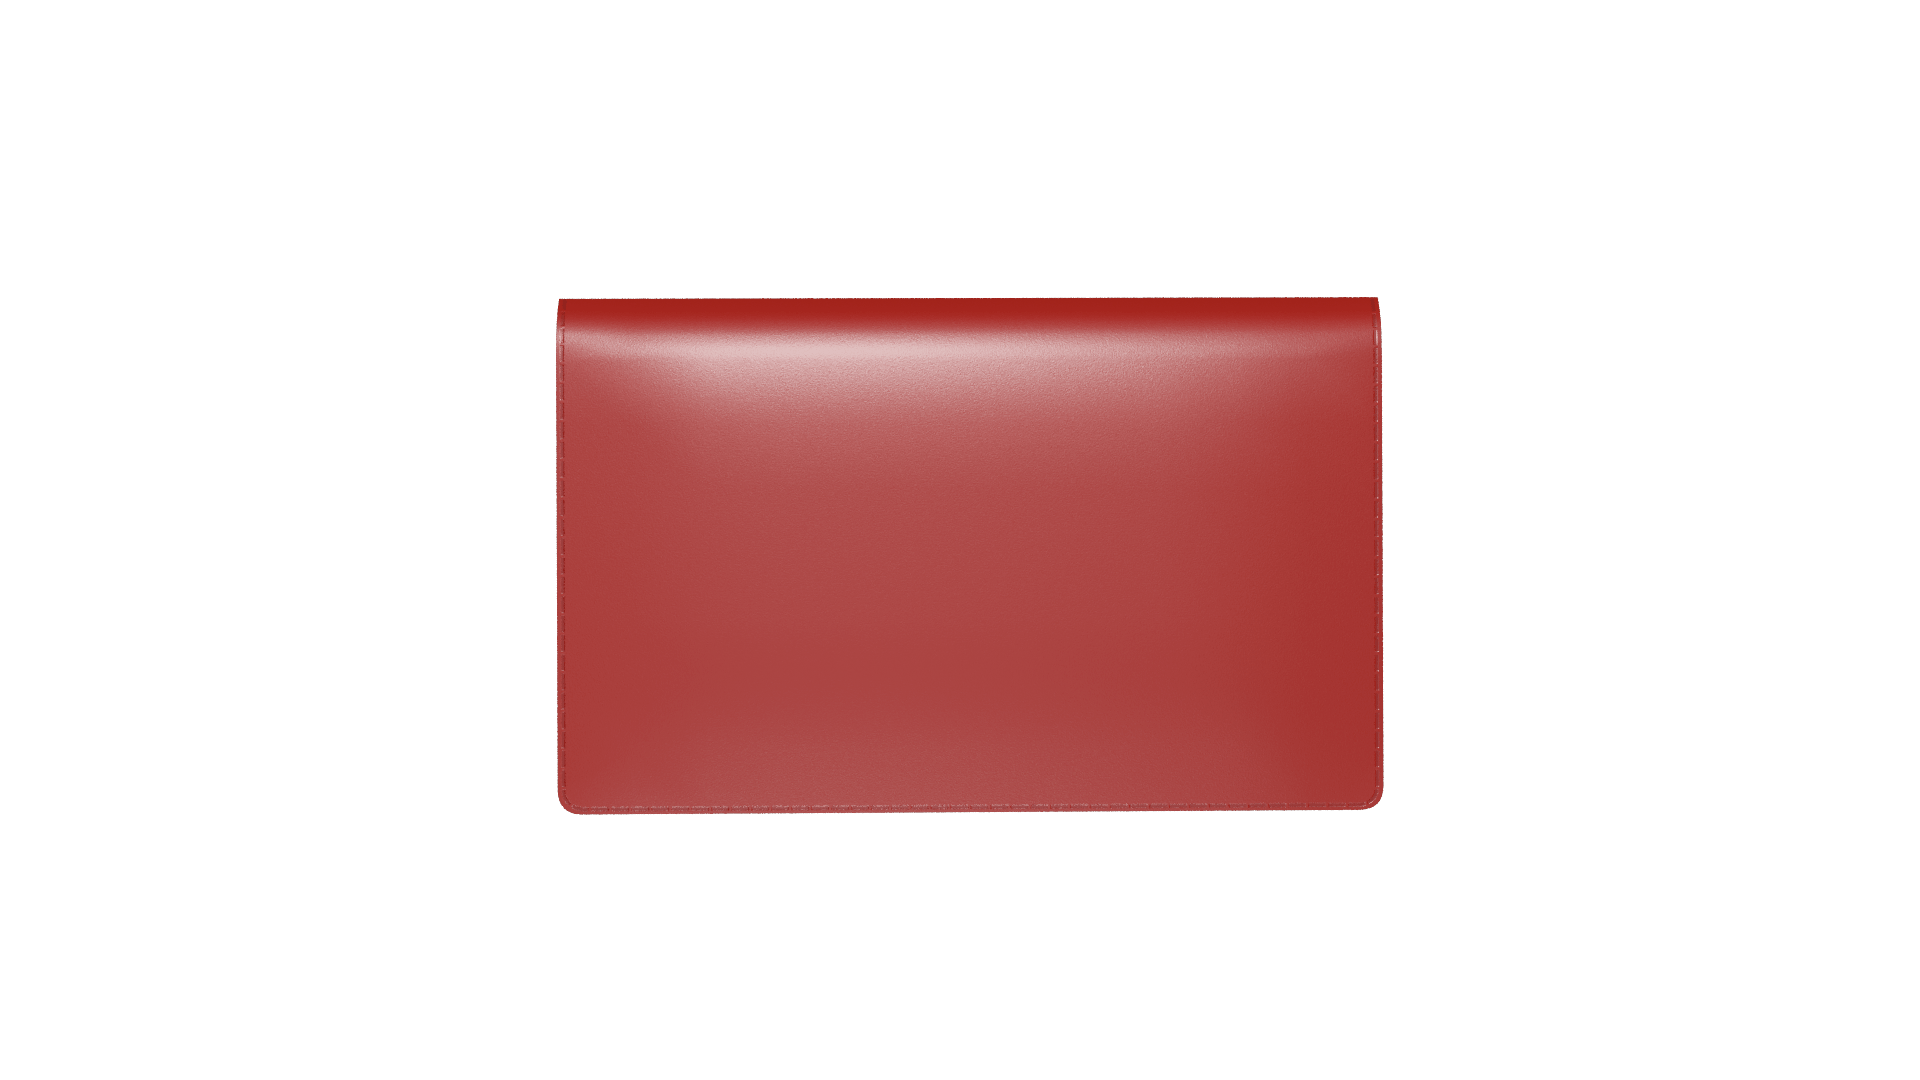 Nickys Mini Wallet Plastic Business Card Holder Rochester 100 Inc